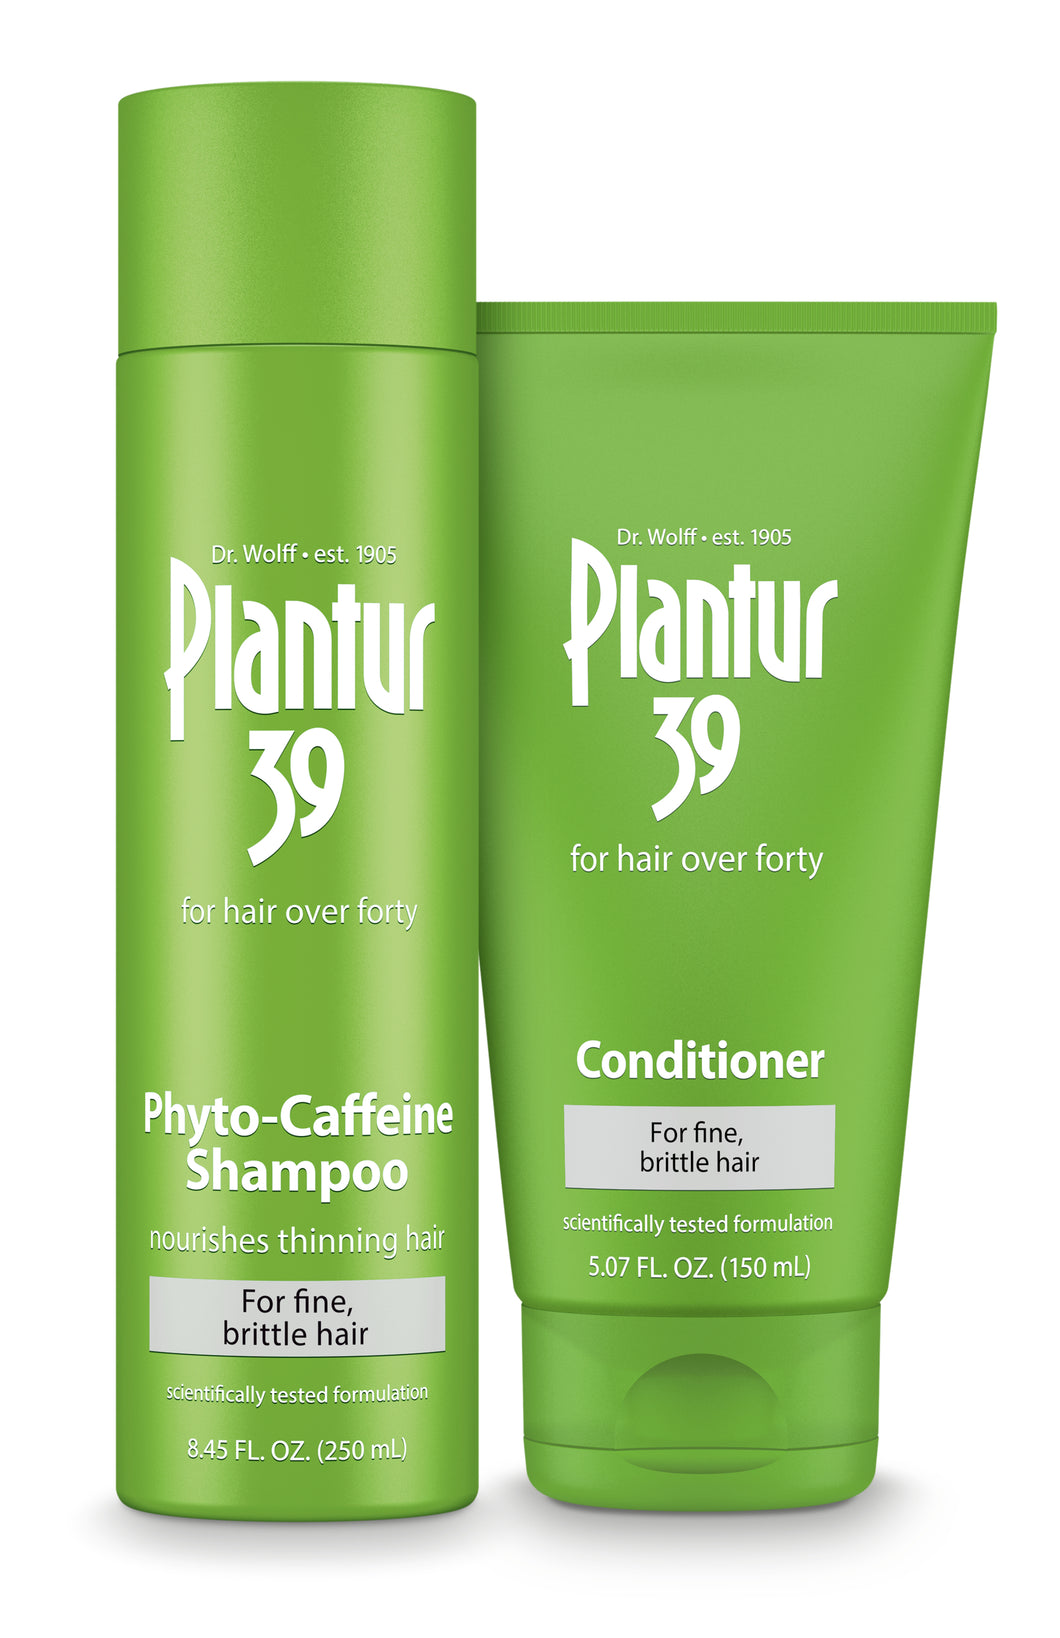 Plantur 39 Phyto-Caffeine Cleanse & Nourish Kit